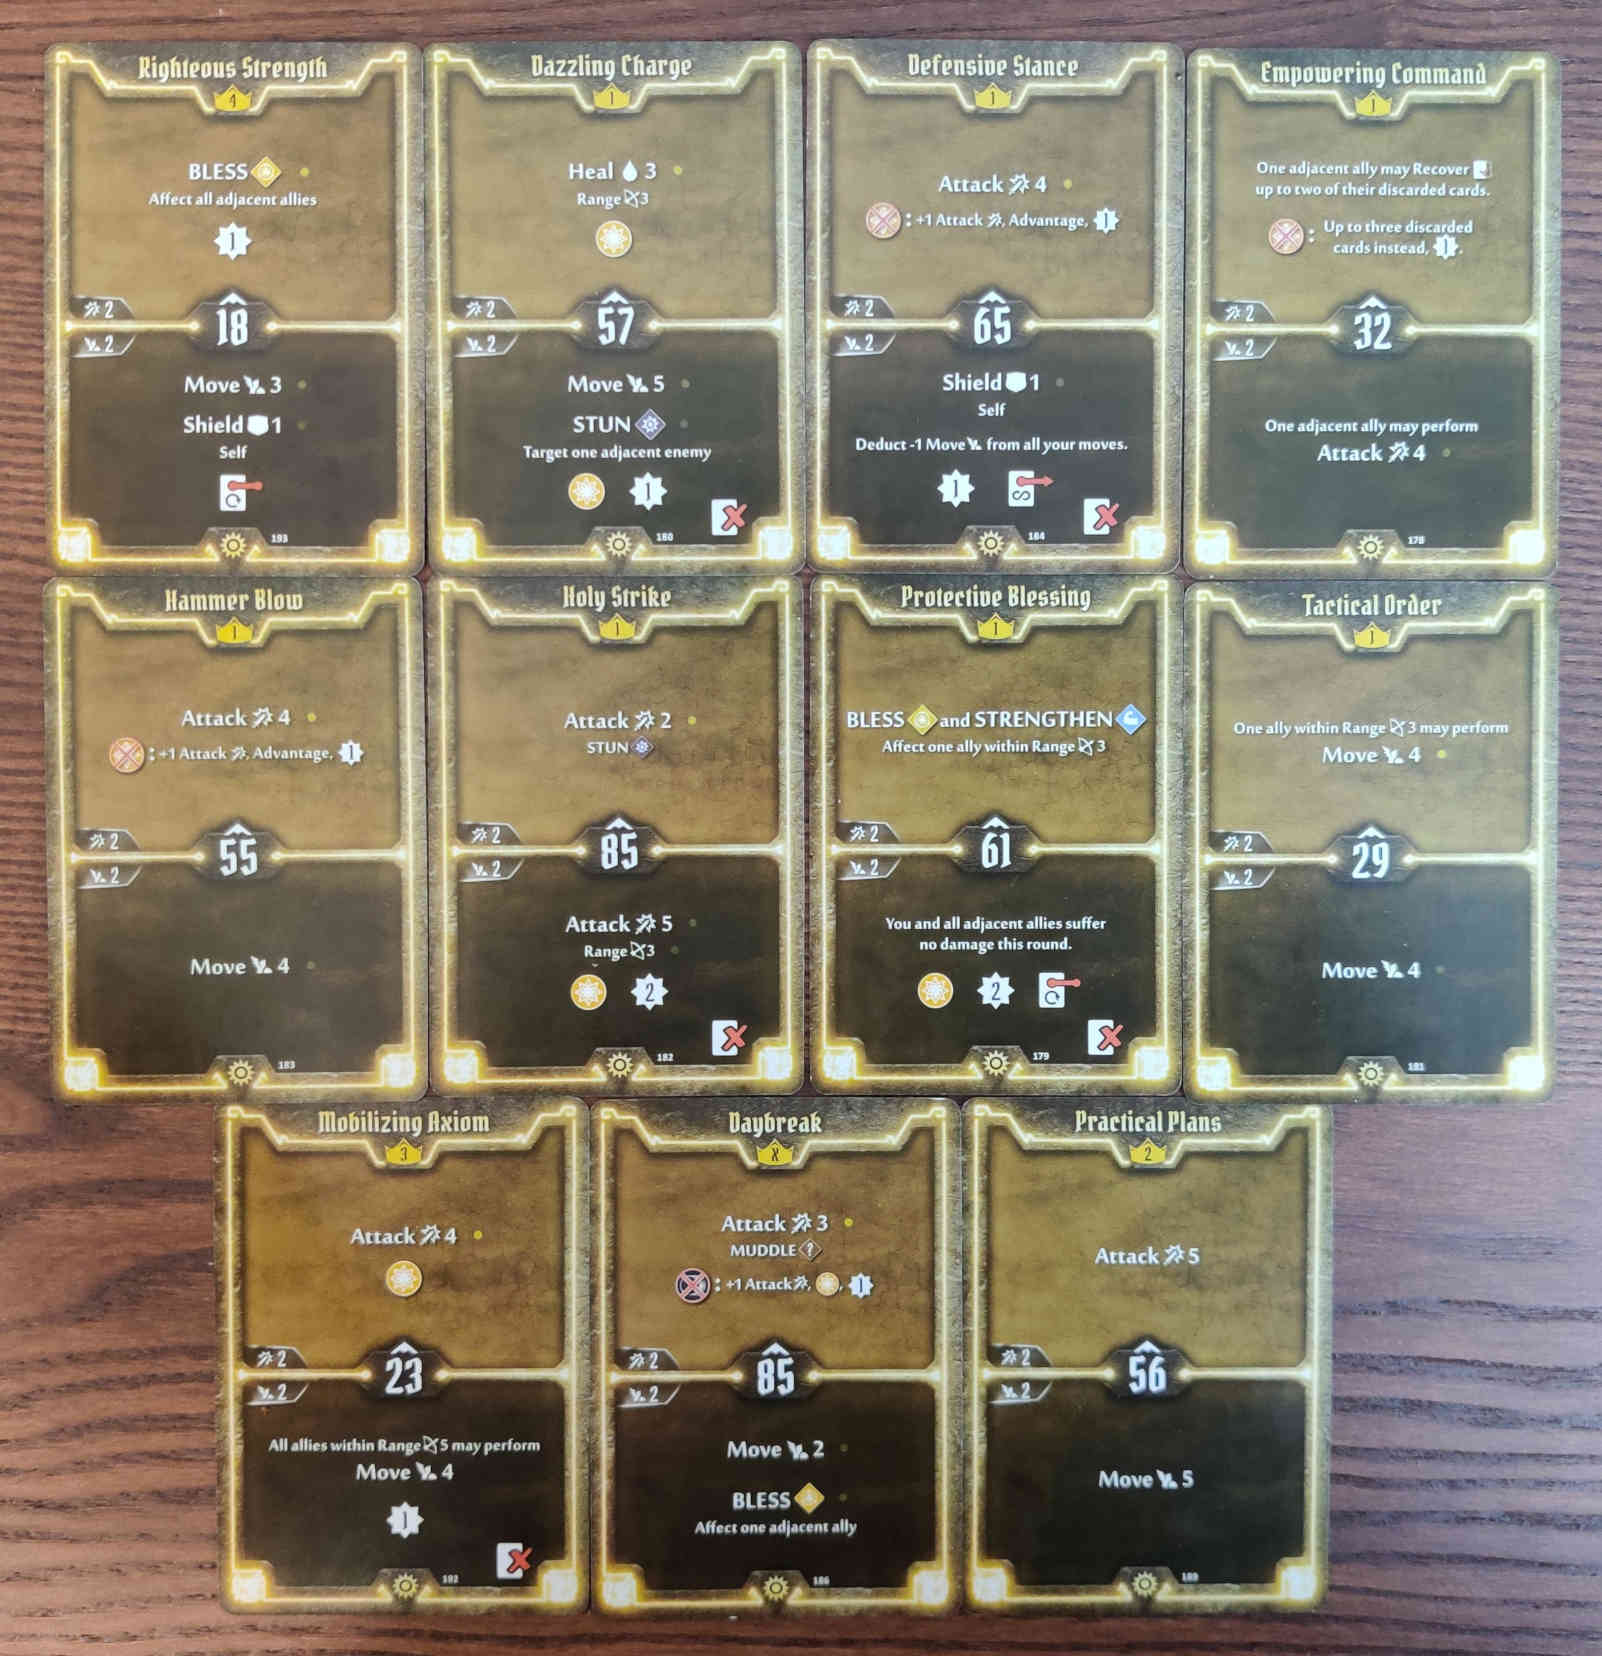 Gloomhaven Sunkeeper Damage Build Level 4 cards